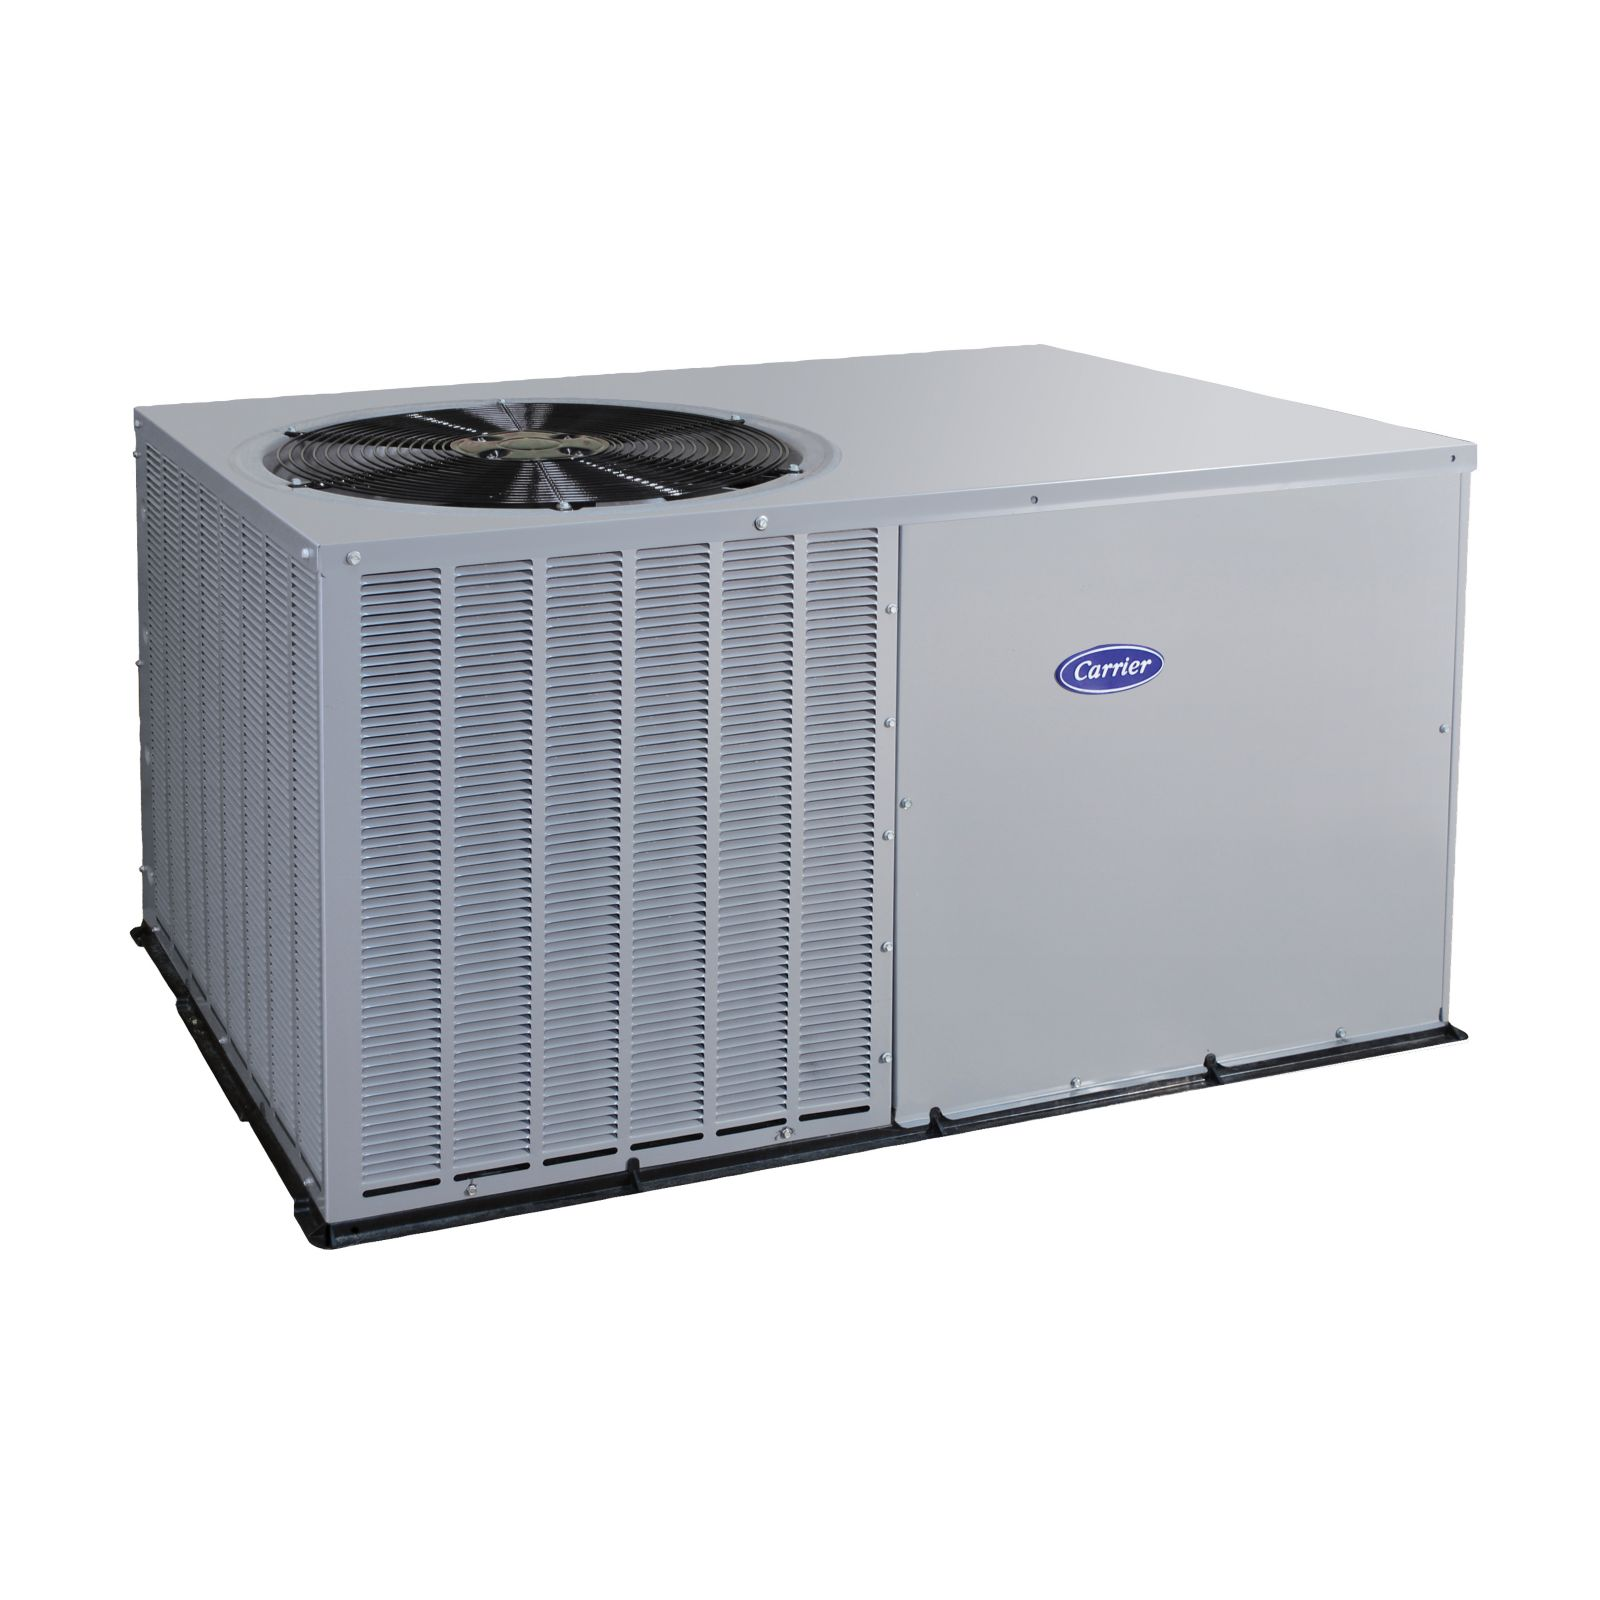 carrier packaged air conditioning unit 2 ton 14 seer | carrier hvac